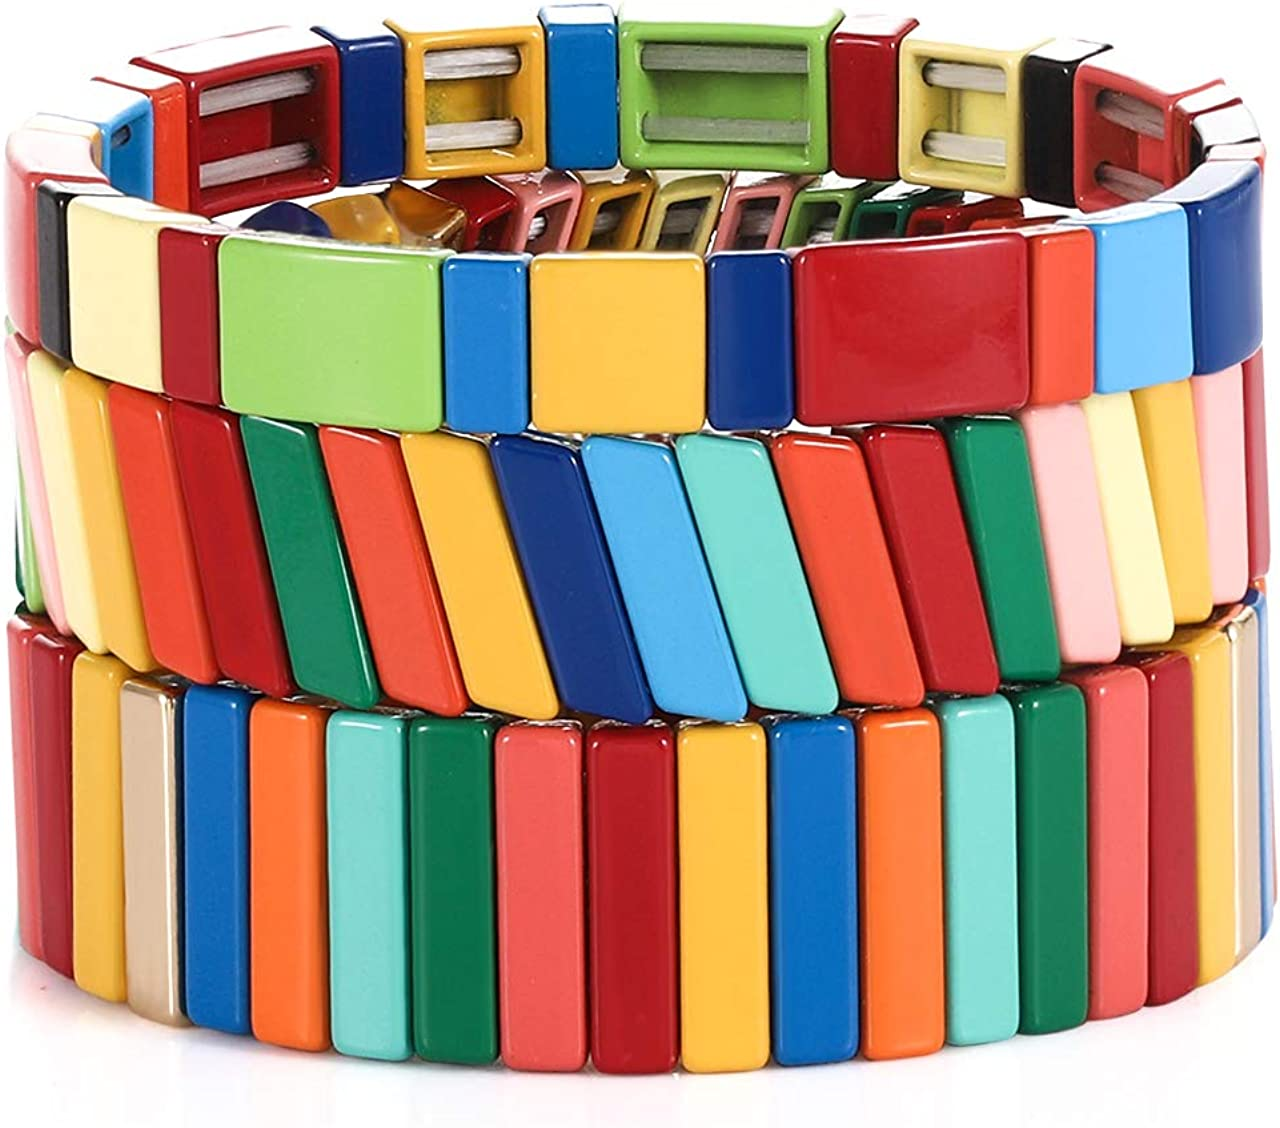 YAHPERN Tile Enamel Bracelets Rainbow Geometric Tila Beads Bracelets Bohemian Colorblock Stretch Bracelet Stackable Strand Bracelet for Woman Man Gift